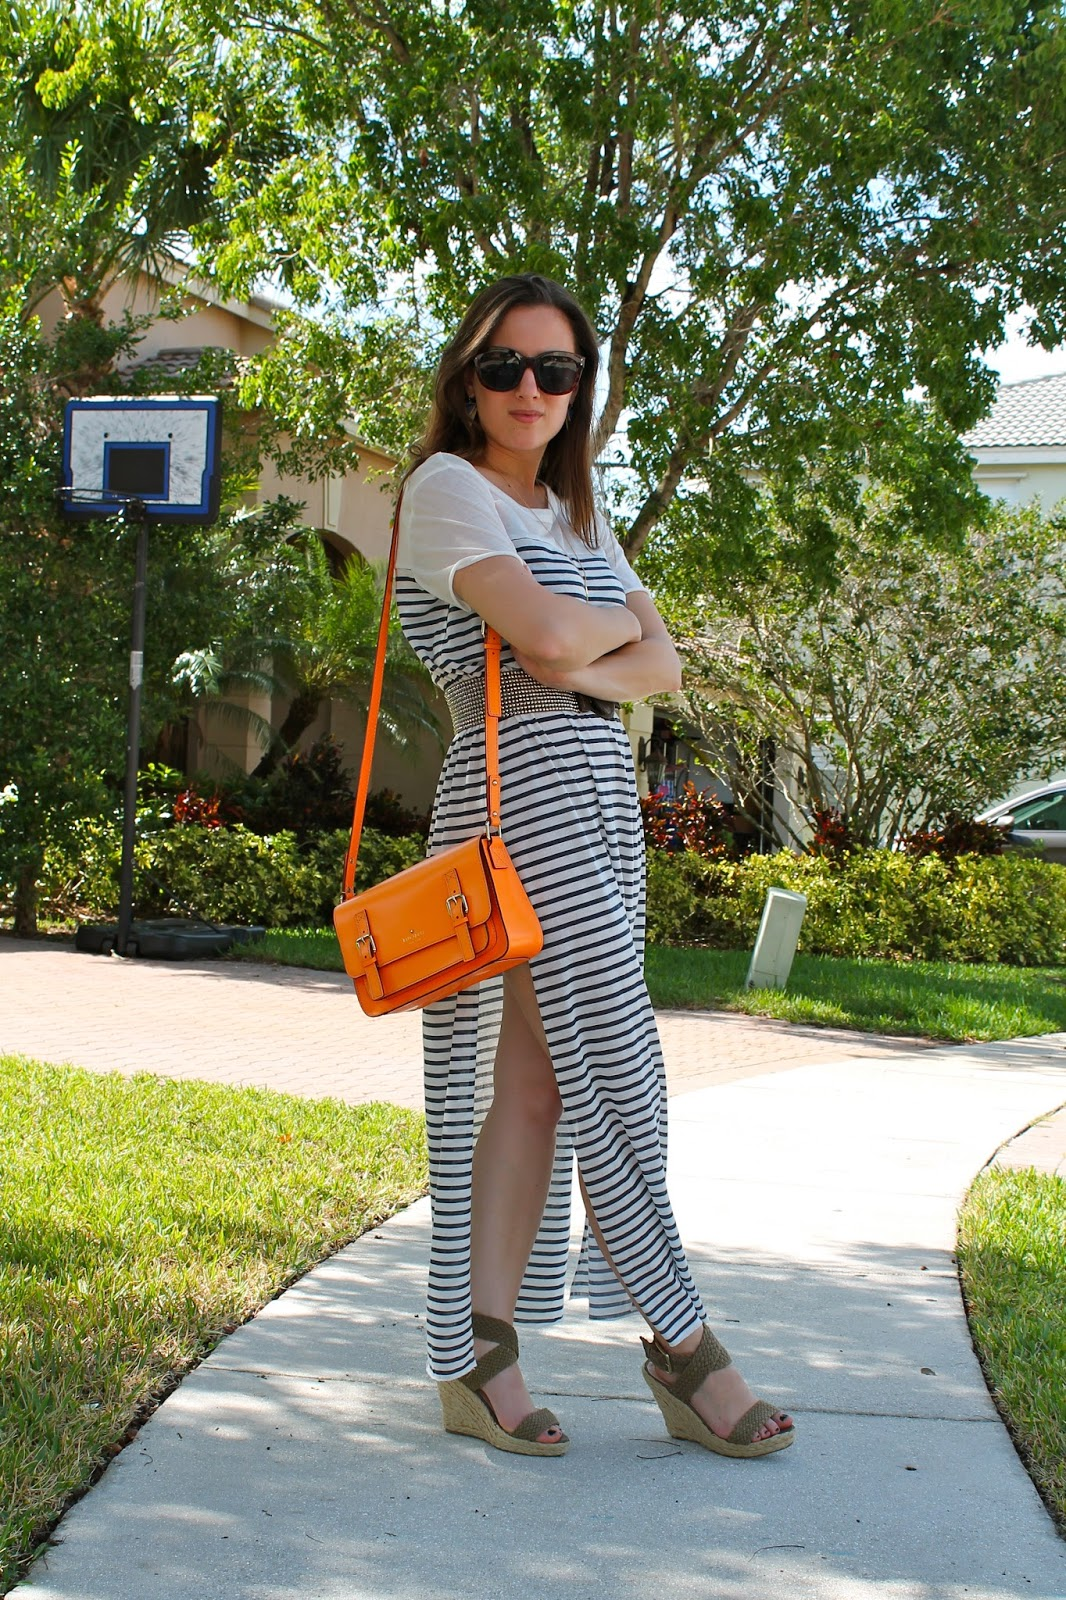 Urban Outfitters, Bakers, Kate Spade, nordstrom, Rocksbox, style, fashion, fashion blogger, style blogger, Miami fashion, summer style, ootd, what to wear, Miami fashion blogger